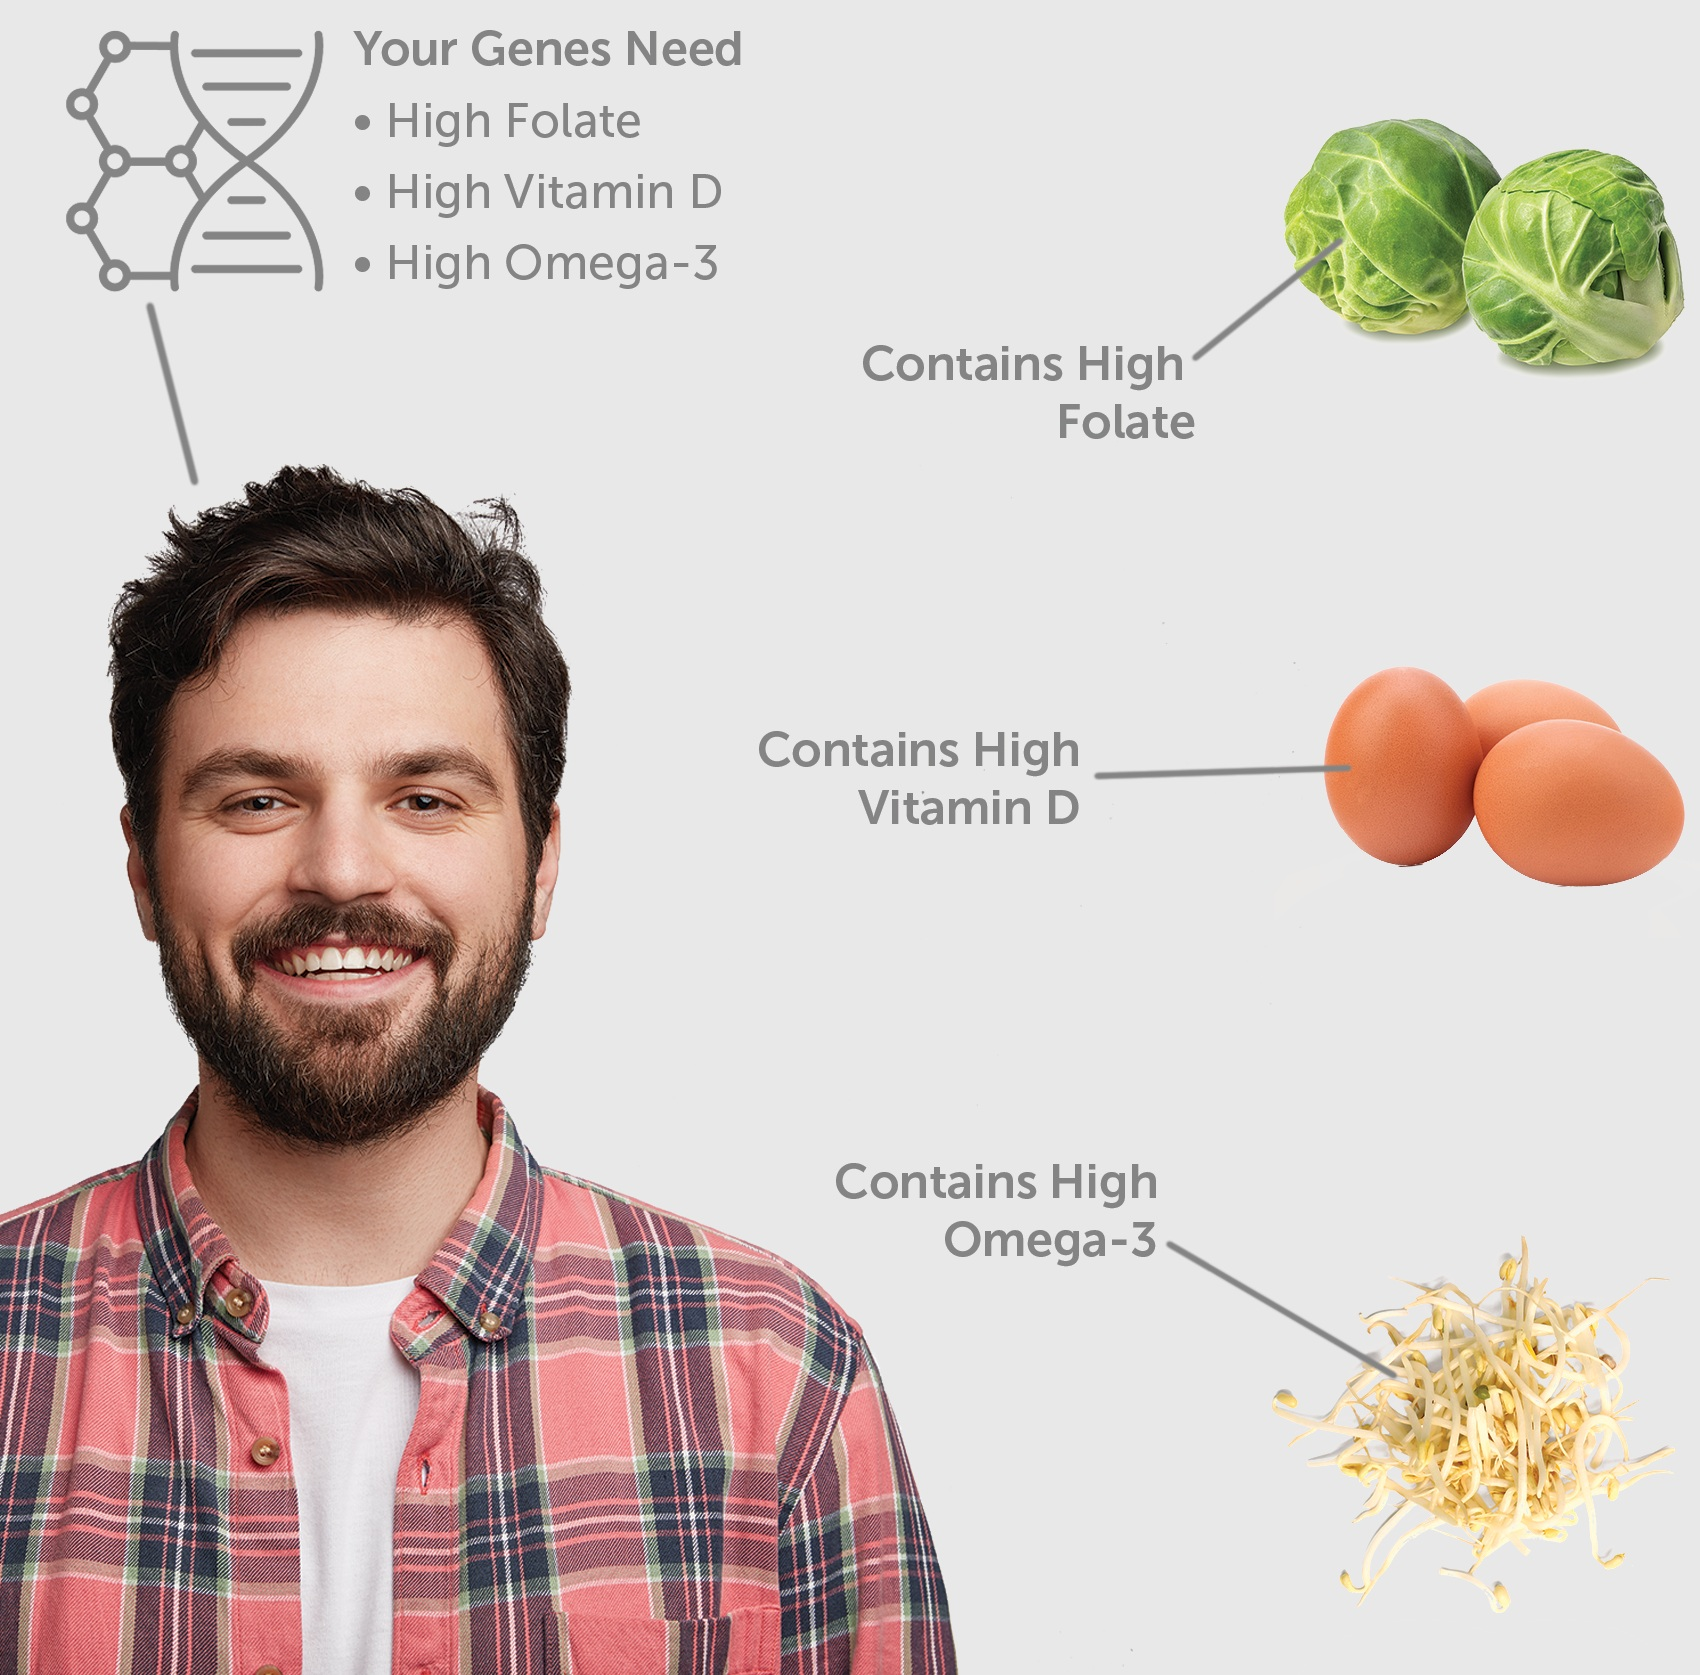 Genes Meet Food - Eating for your genes is easy. We compare your genes' ideal nutrient intakes against the nutrient compositions of the foods in our extensive database. This provides you with over 85 foods that are healthier for you. Whether you're at grocery shopping, on the go, or at your favorite restaurant, you'll know exactly which foods to eat.